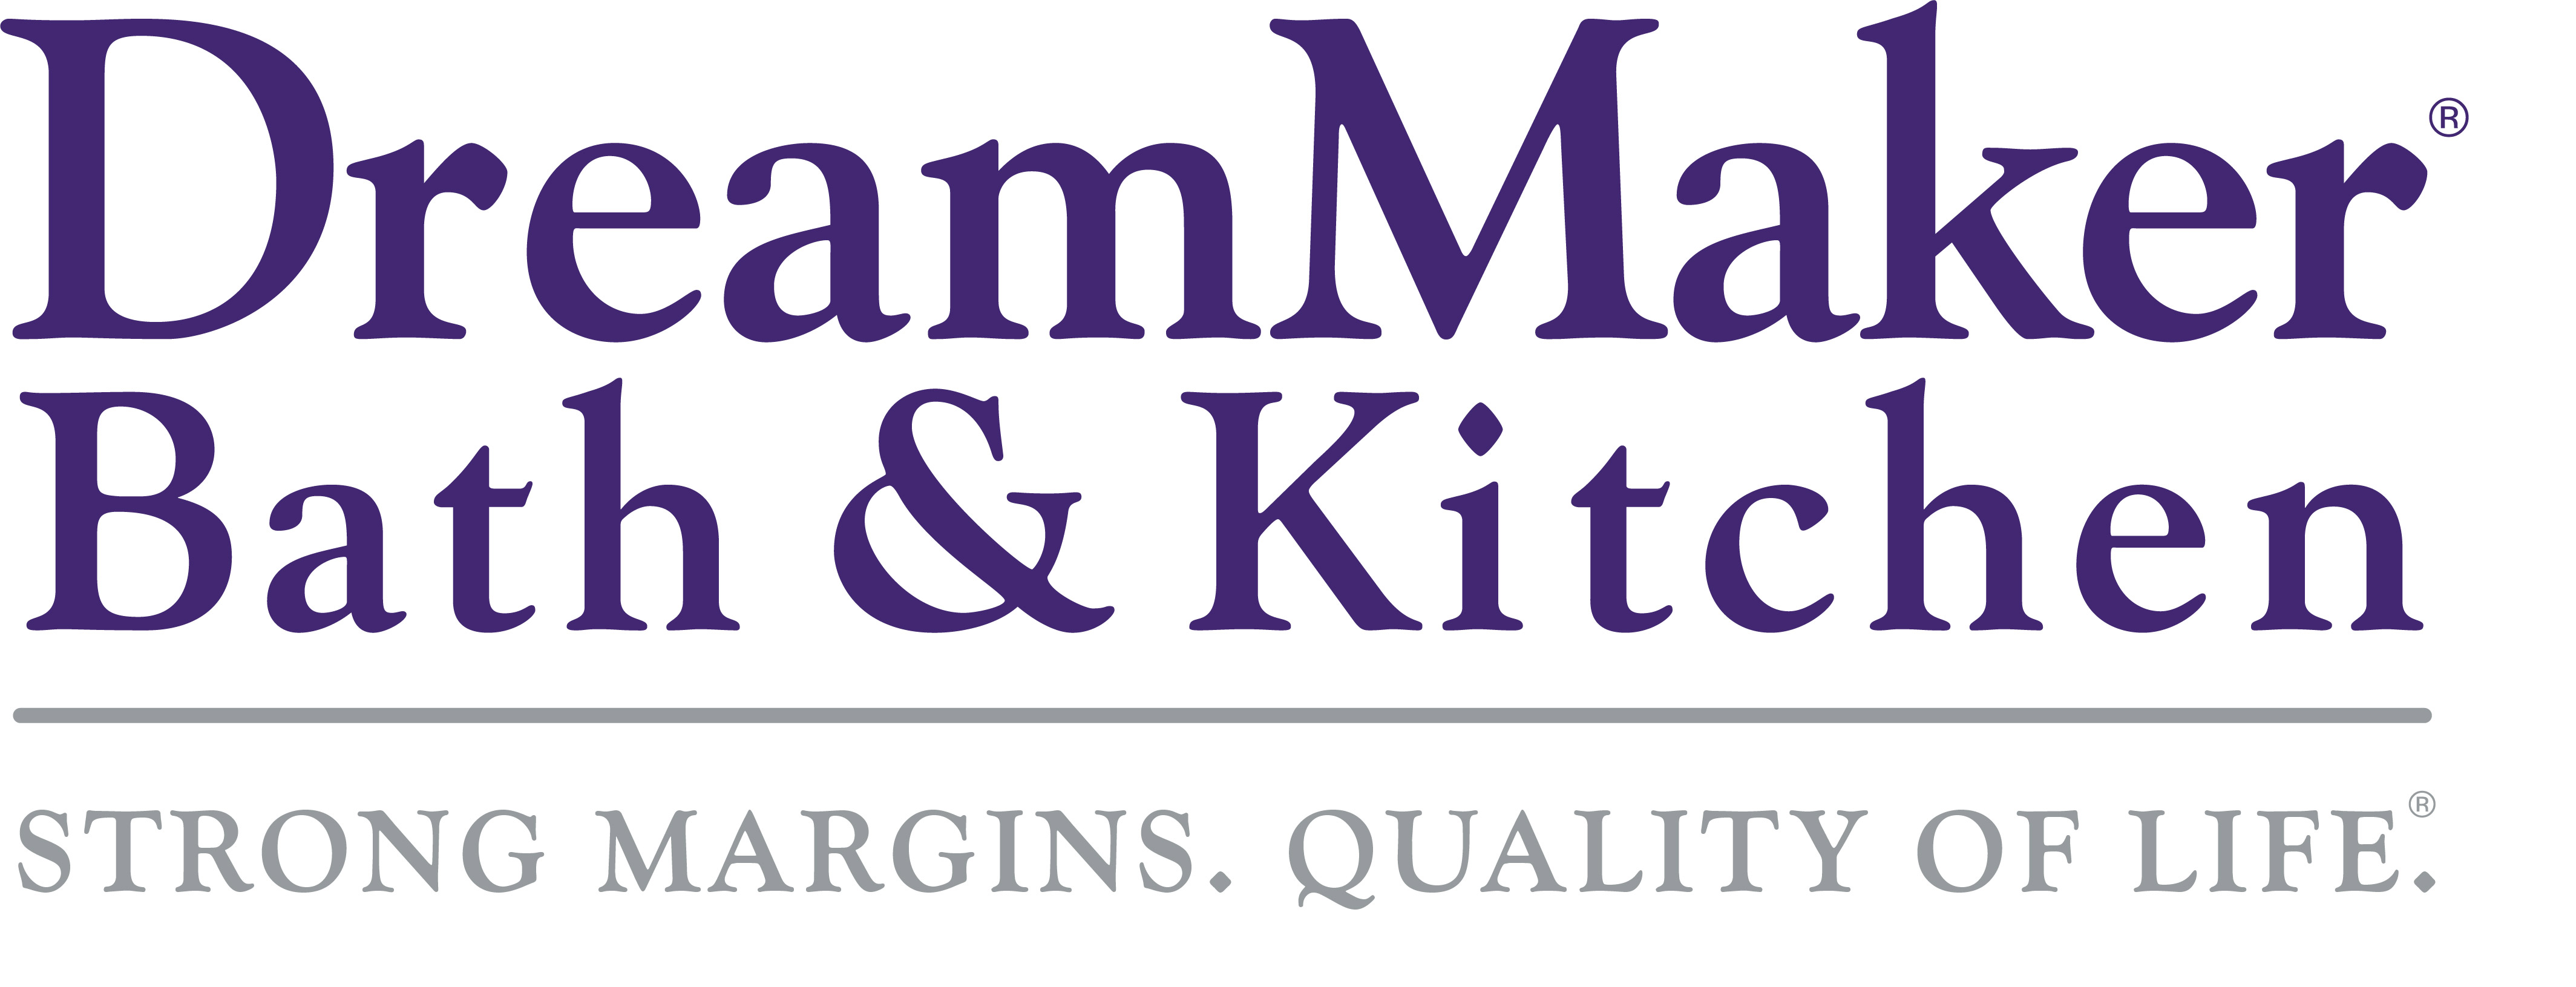 DreamMaker Bath and Kitchen Franchising